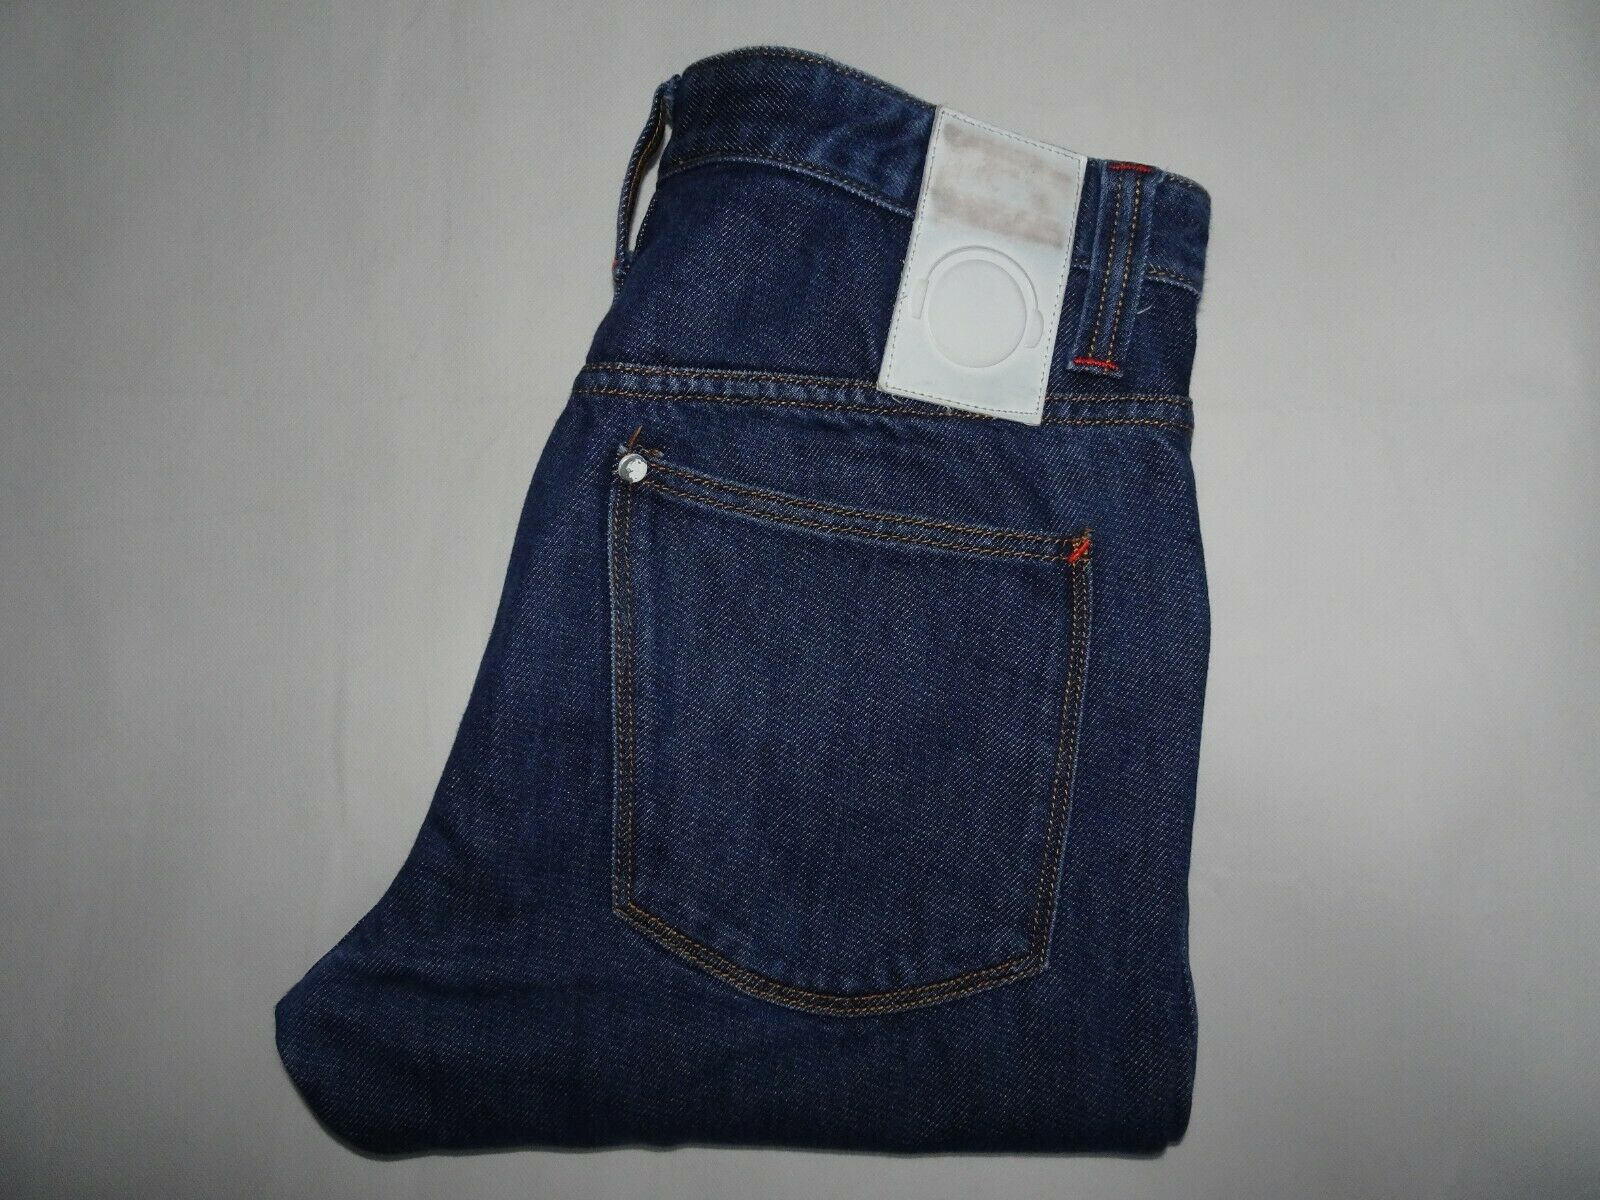 "HUMOR Mens Jeans bluee Denim Curved Slim Leg Fit SIZE W32 L36 Waist 32"" Leg 36"